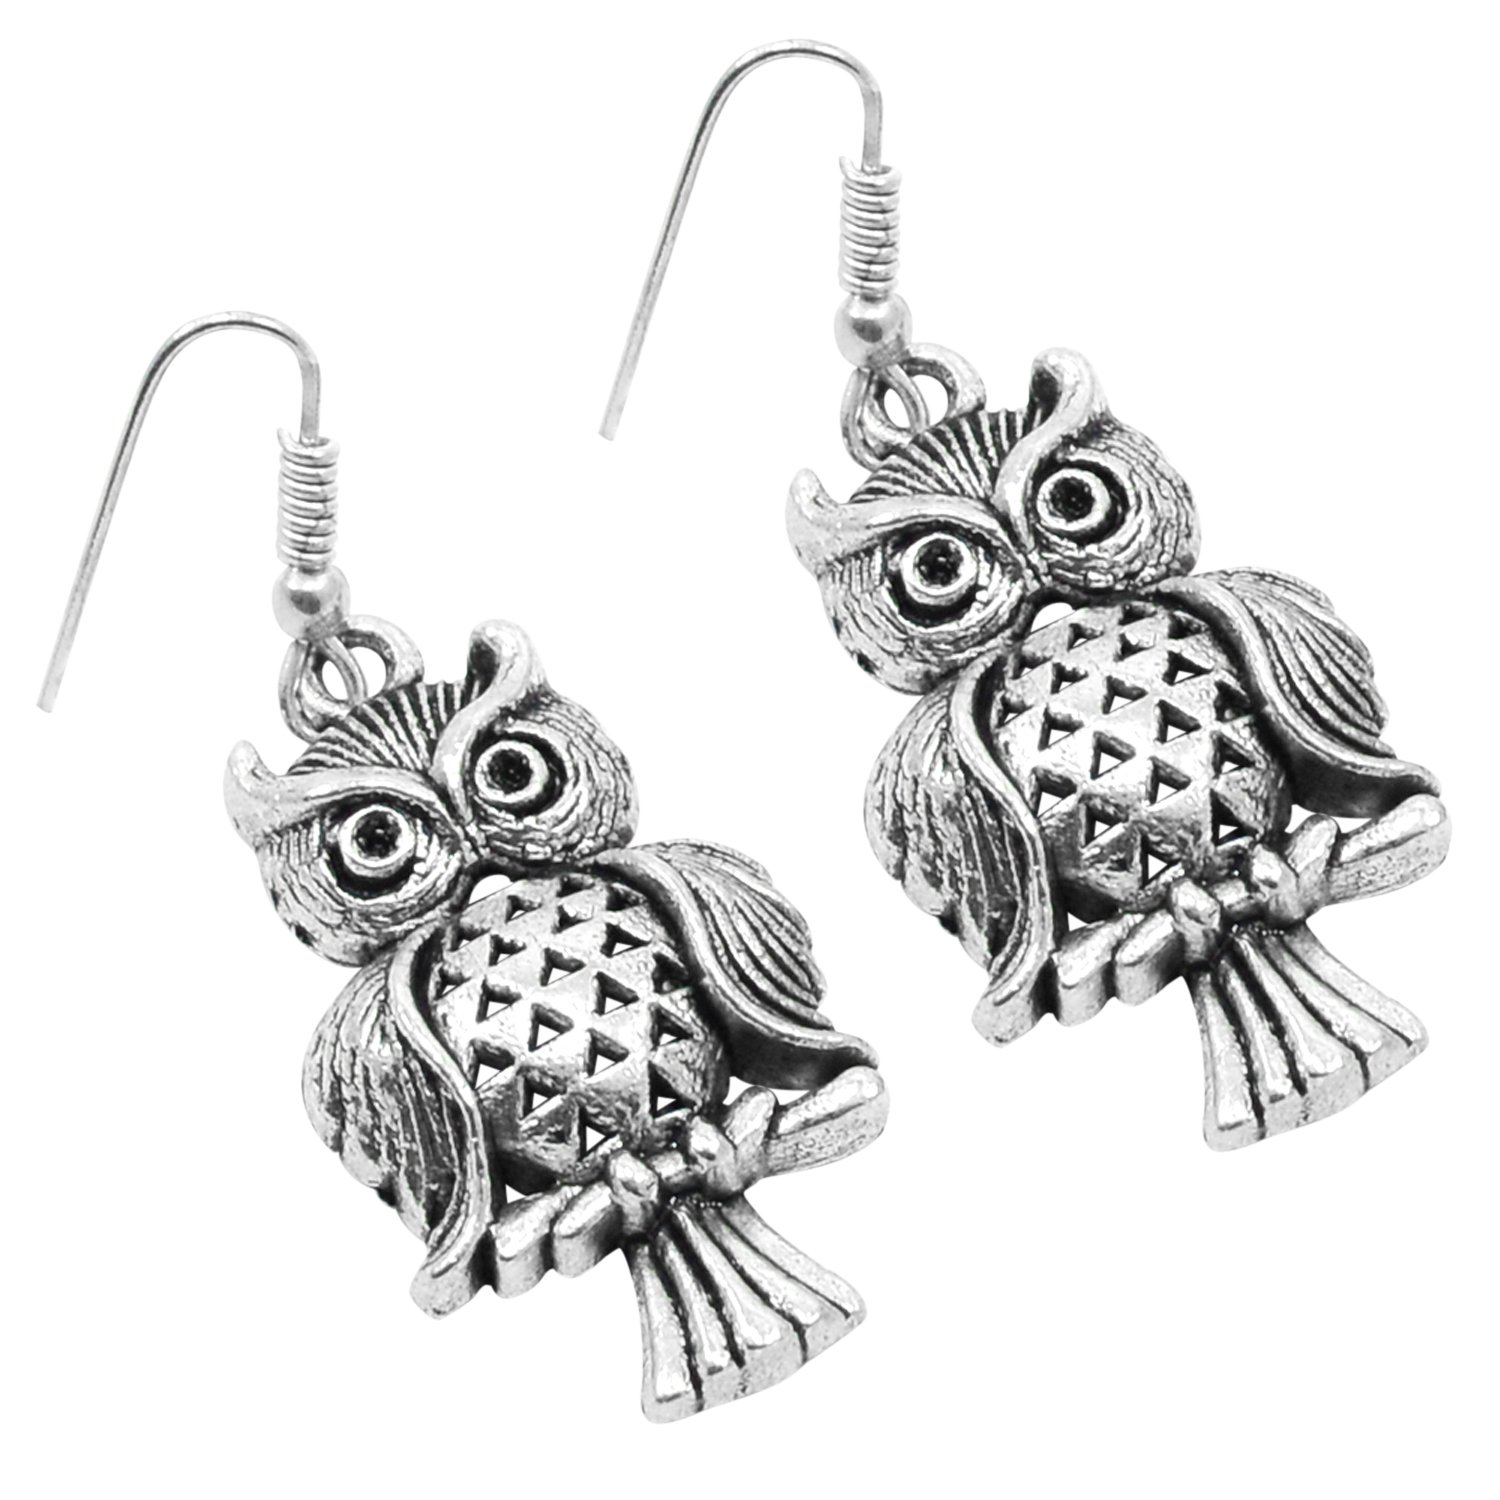 Saamarth Impex 925 Silver Plated Dangle Earring For Women /& Girls PG-103902